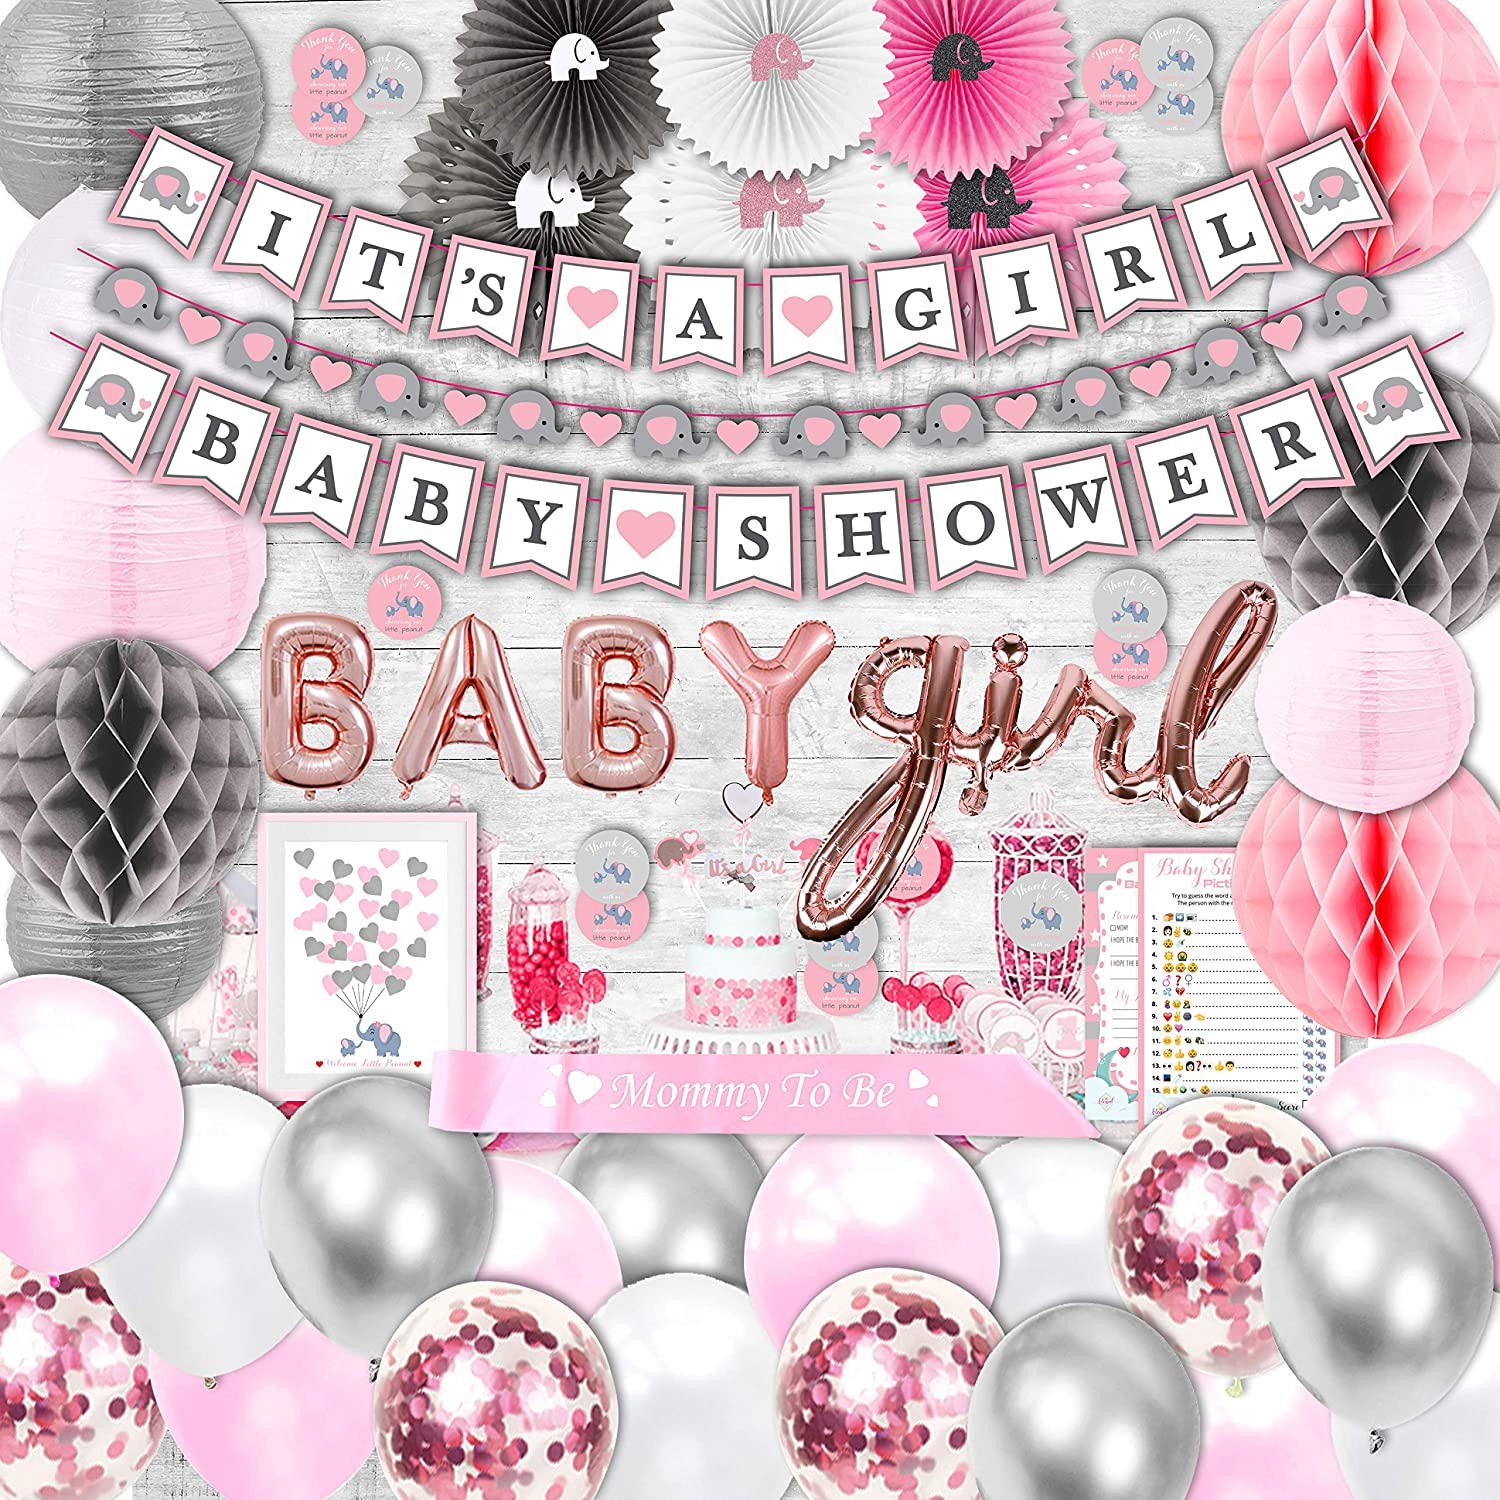 183 Piece Pink Elephant Baby Shower Decorations for Girl Kit - It's a Girl Pre-Strung Banners, Garland, Guestbook Mommy to Be Sash Balloons Cake Toppers Paper Fans Lanterns, Games & Thank You Stickers